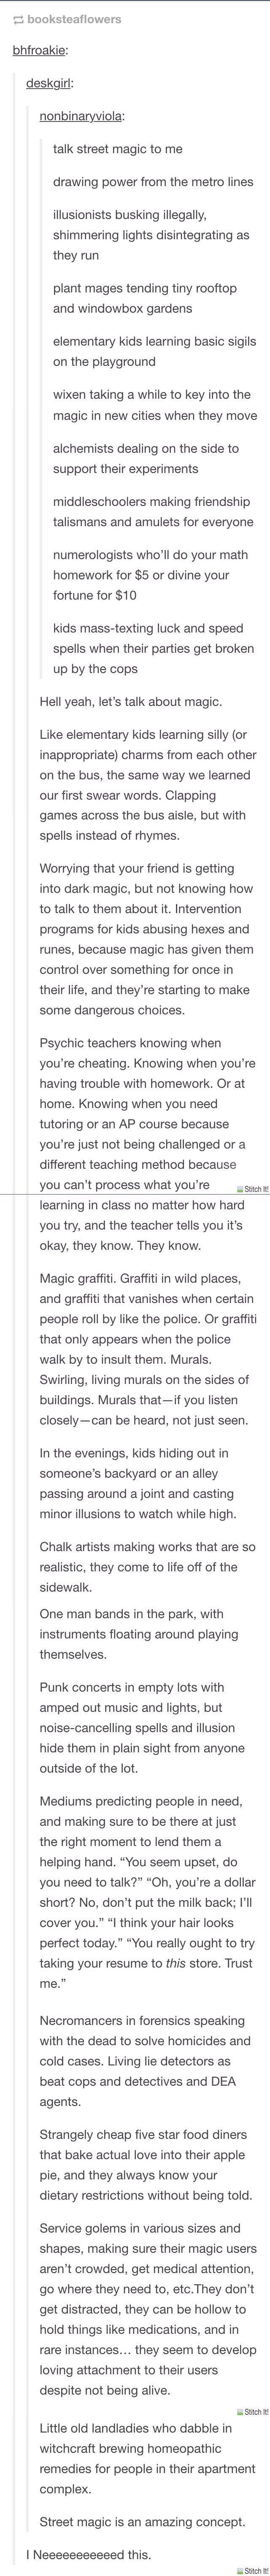 Story: For the modern fairy tale world. I just want a world with all of this happening. Maybe a Grimm's Fairy Tales like compilation of stories.